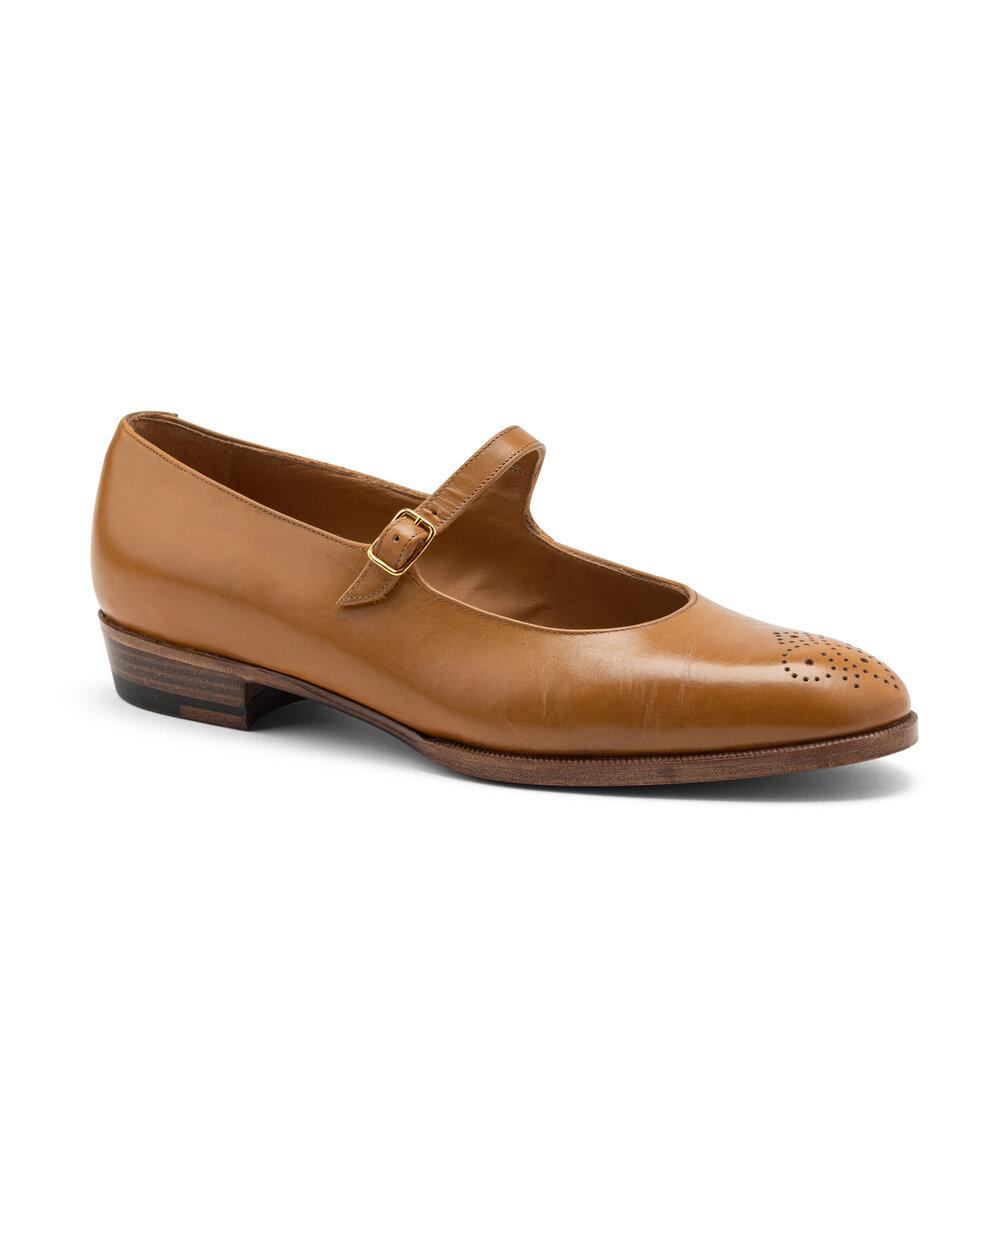 ODPEssentials Classic Mary Jane - Honey Leather